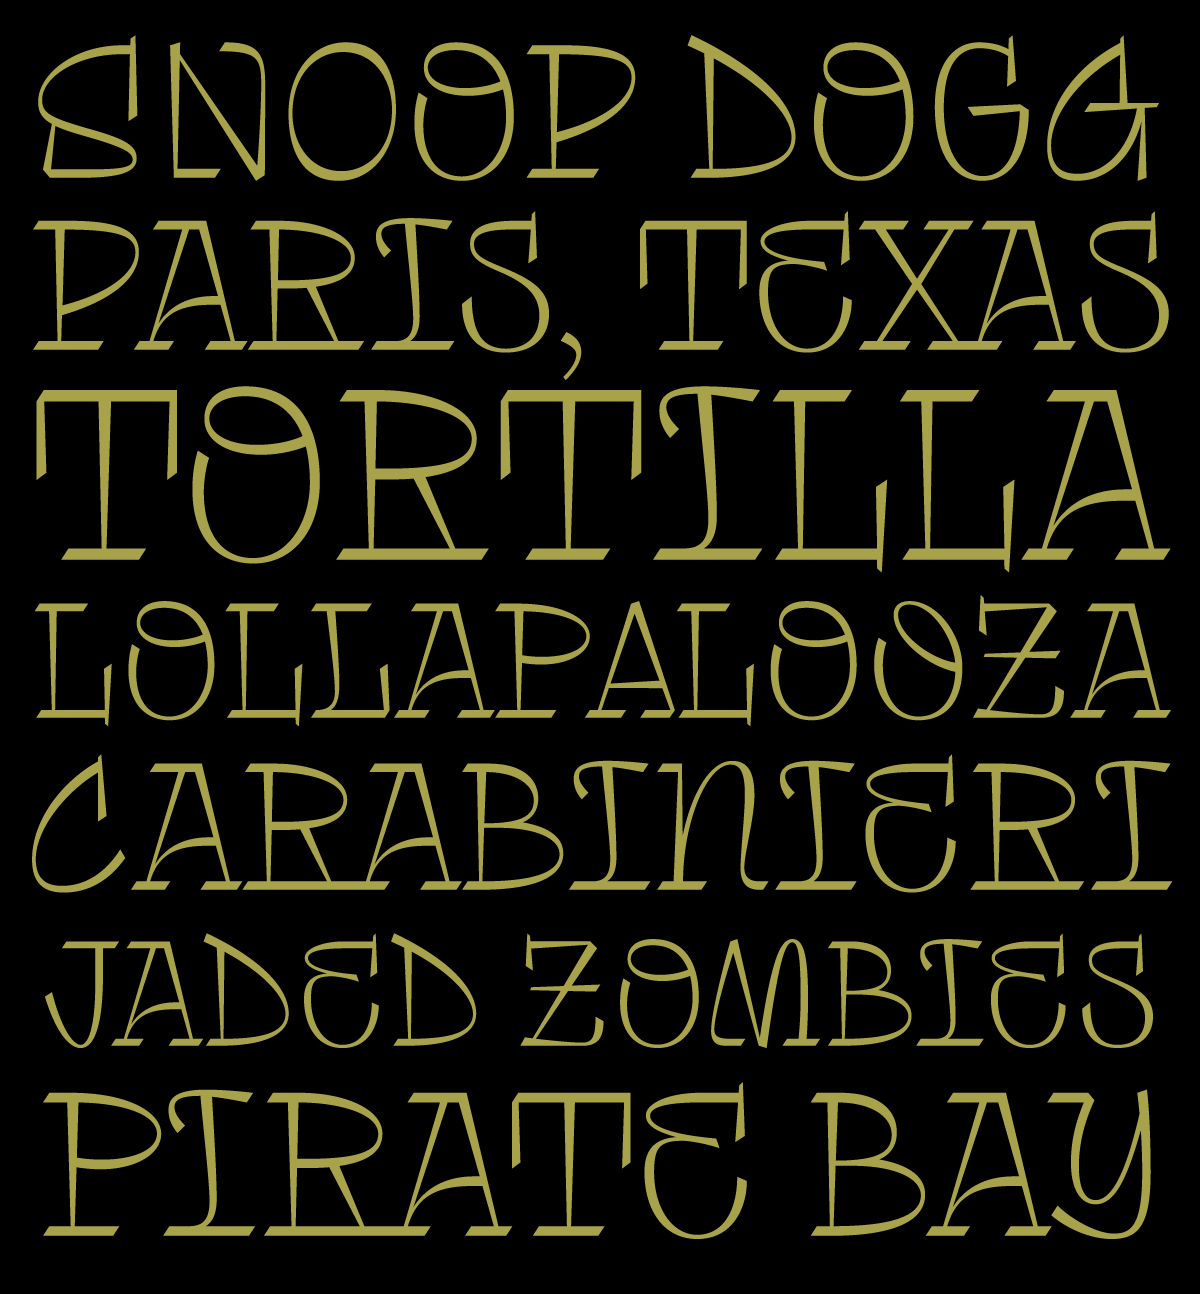 Tomasa, a new typeface designed by Fer Cozzi for Typeverything.com